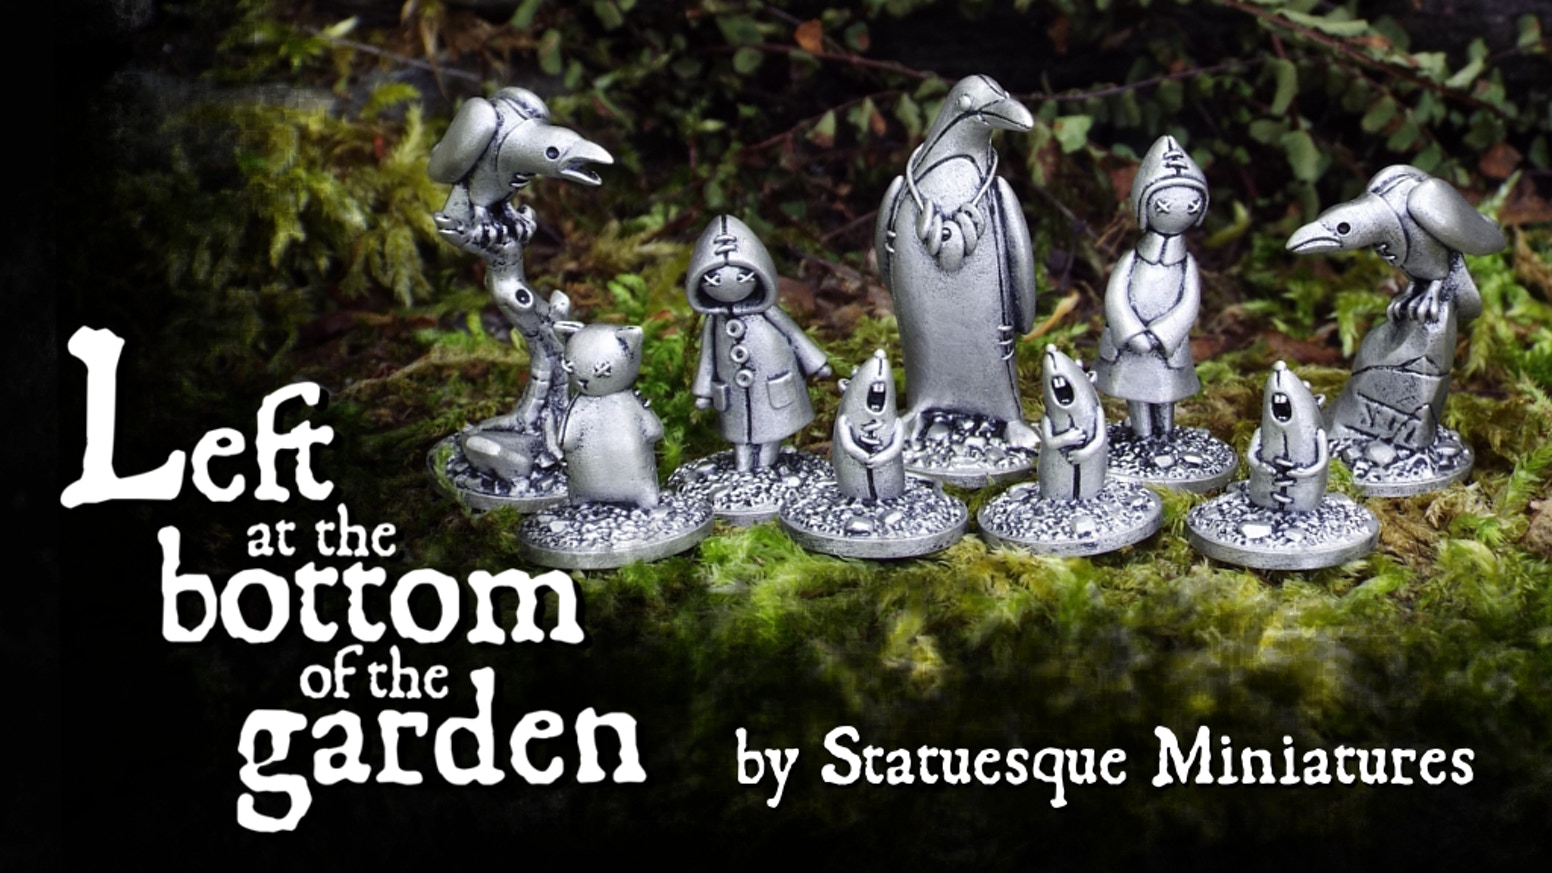 A set of high quality, lead-free metal miniatures of lost toys, suitable for tabletop gaming, painting and collecting. For anyone who missed the Kickstarter,Pre-Orderswill go live on the Statuesque webstore shortly.